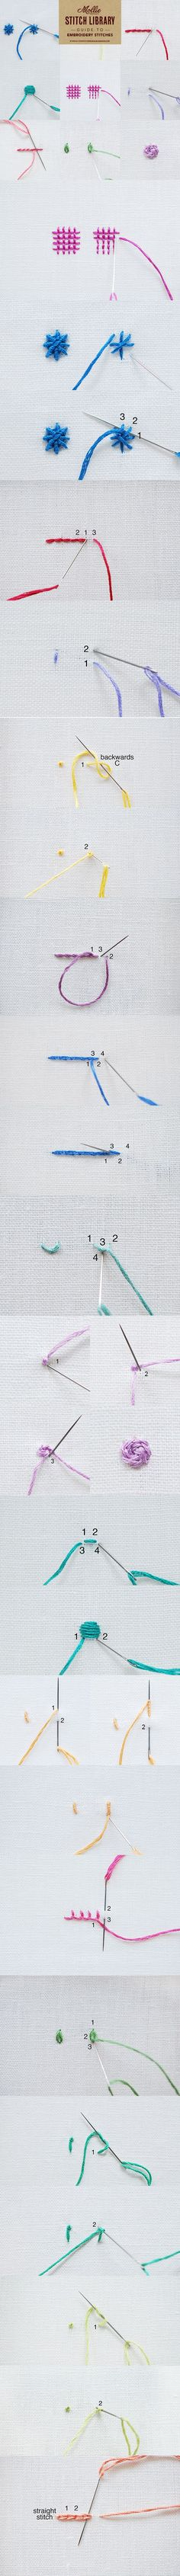 Knitting Patterns Stitches Learn 17 embroidery stitches with our handy guide. Bookmark or Pin this page for future reference or. Embroidery Designs, Hand Embroidery Stitches, Embroidery Techniques, Ribbon Embroidery, Embroidery Art, Cross Stitch Embroidery, Sewing Hacks, Sewing Crafts, Sewing Projects